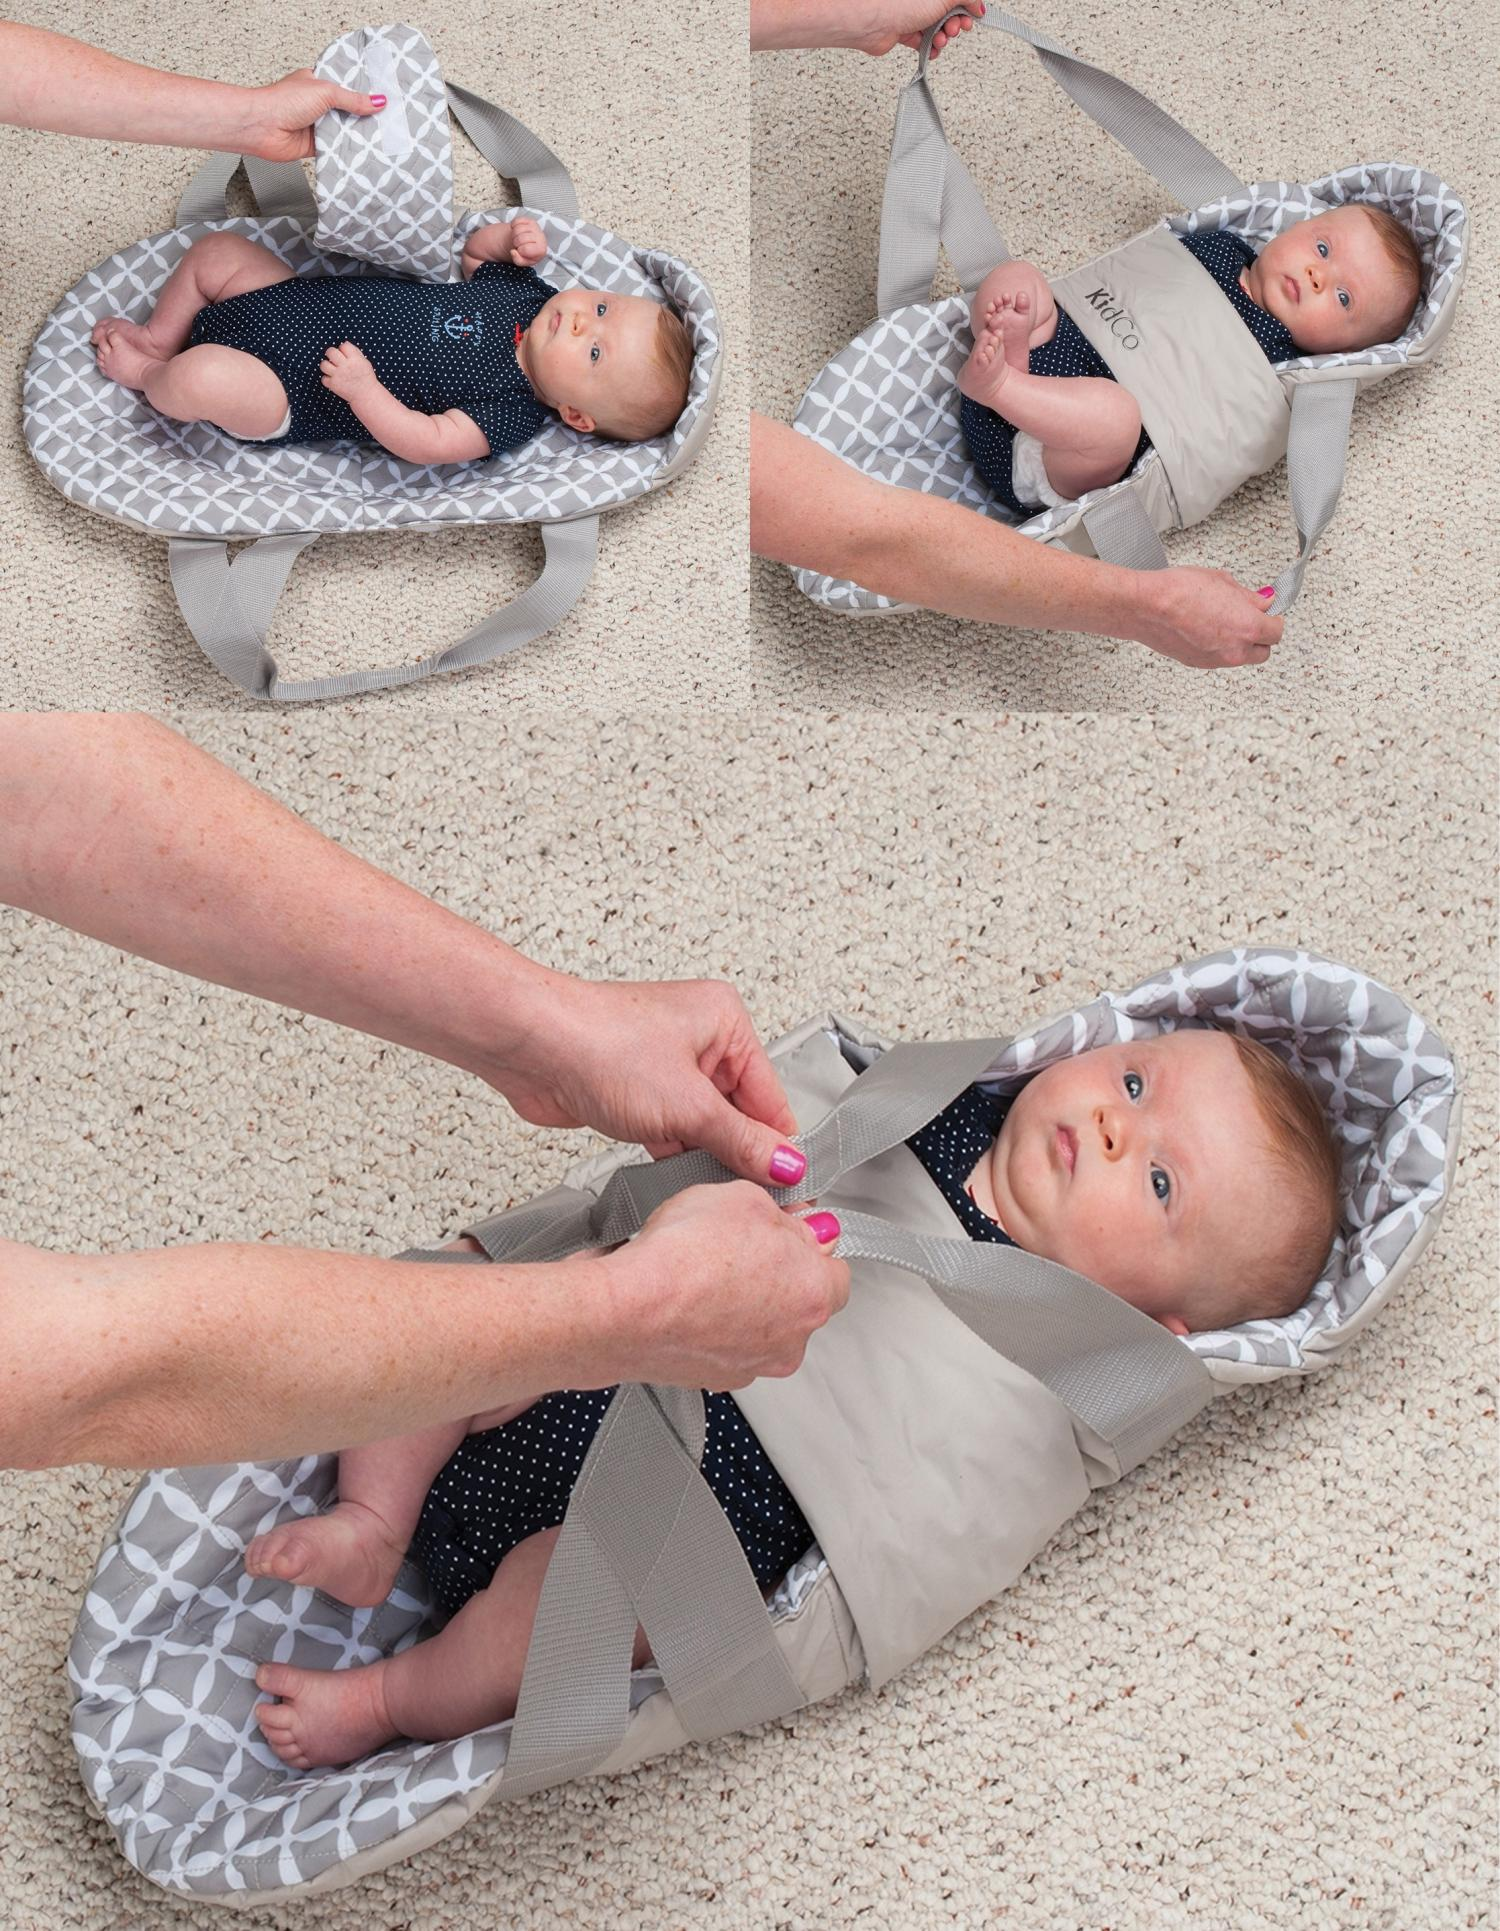 SwingPod Baby Swaddle Swing - Swing baby with arm